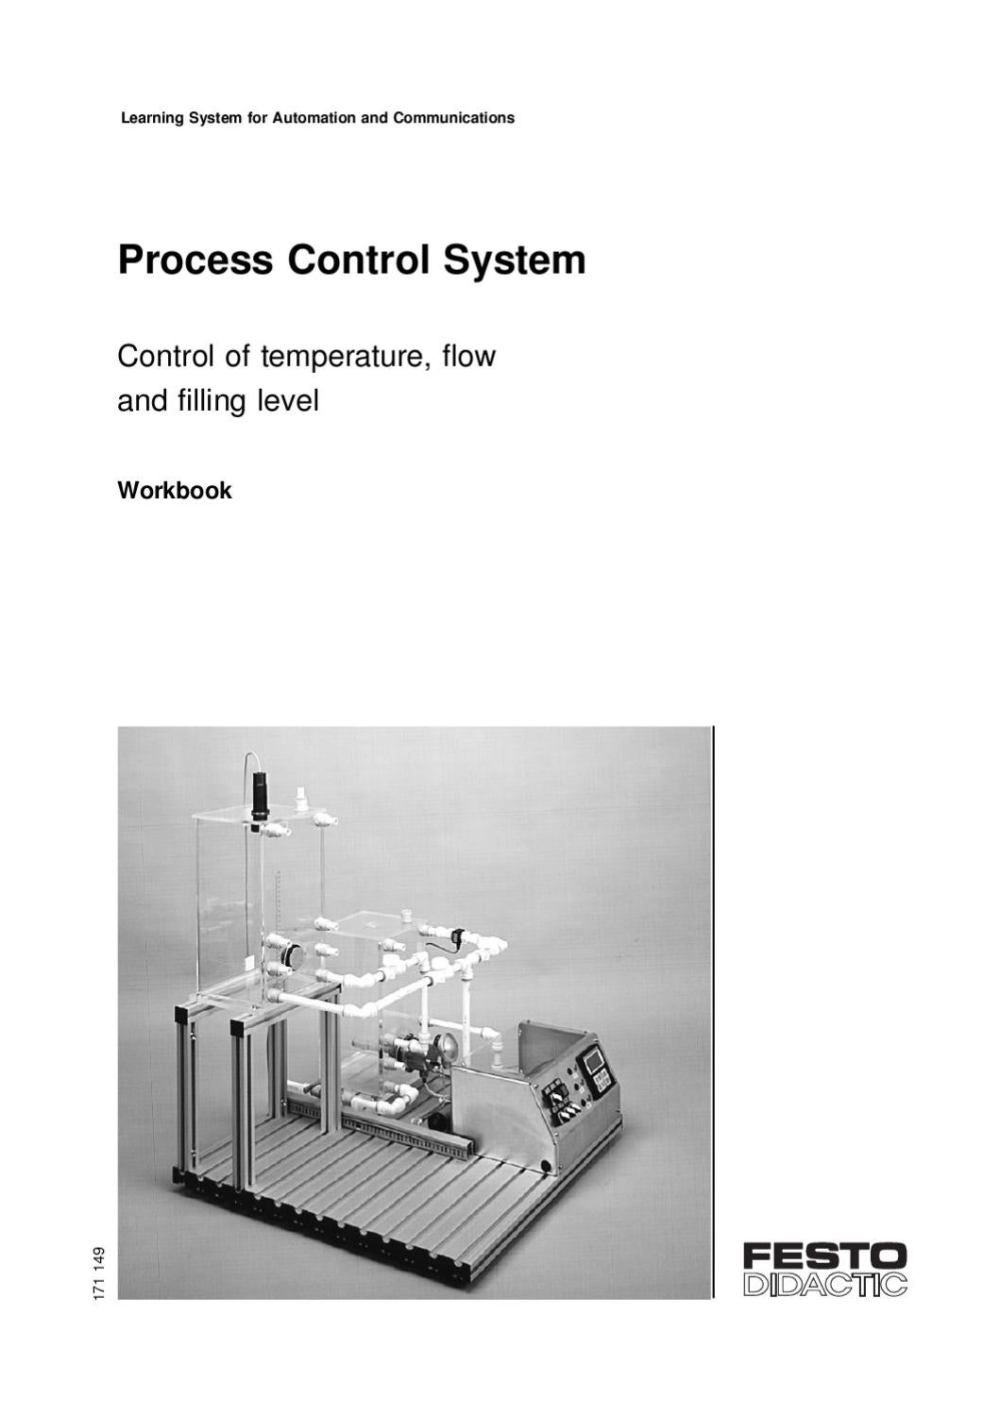 medium resolution of process control system workbook by festo